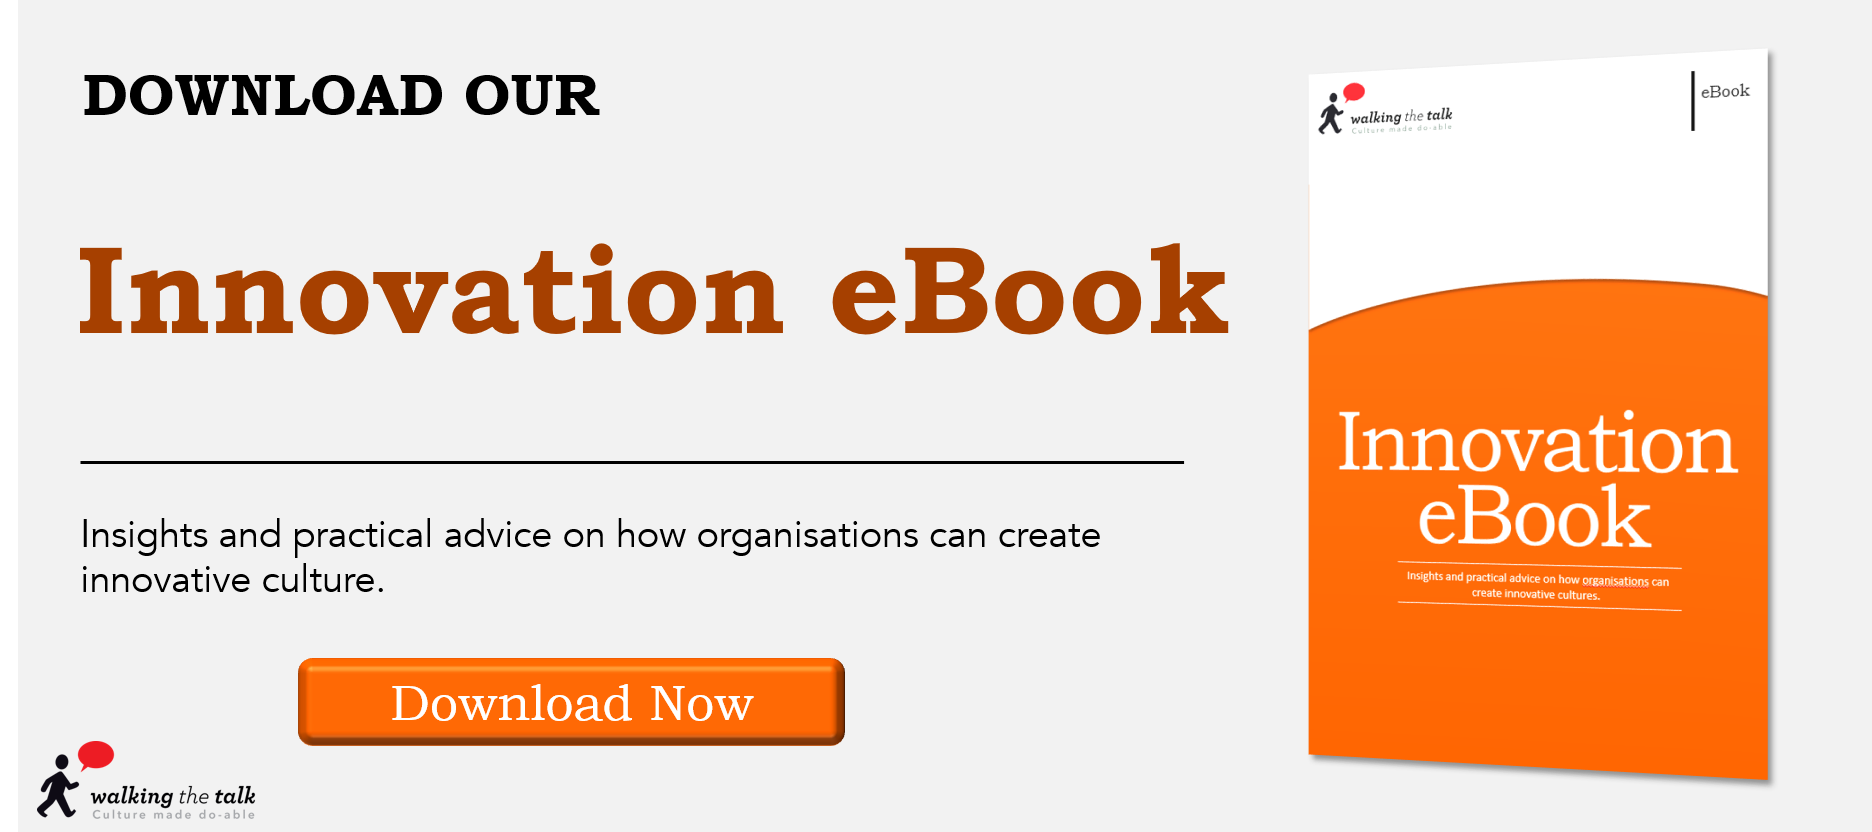 Download Walking the Talk's free Innovation eBook